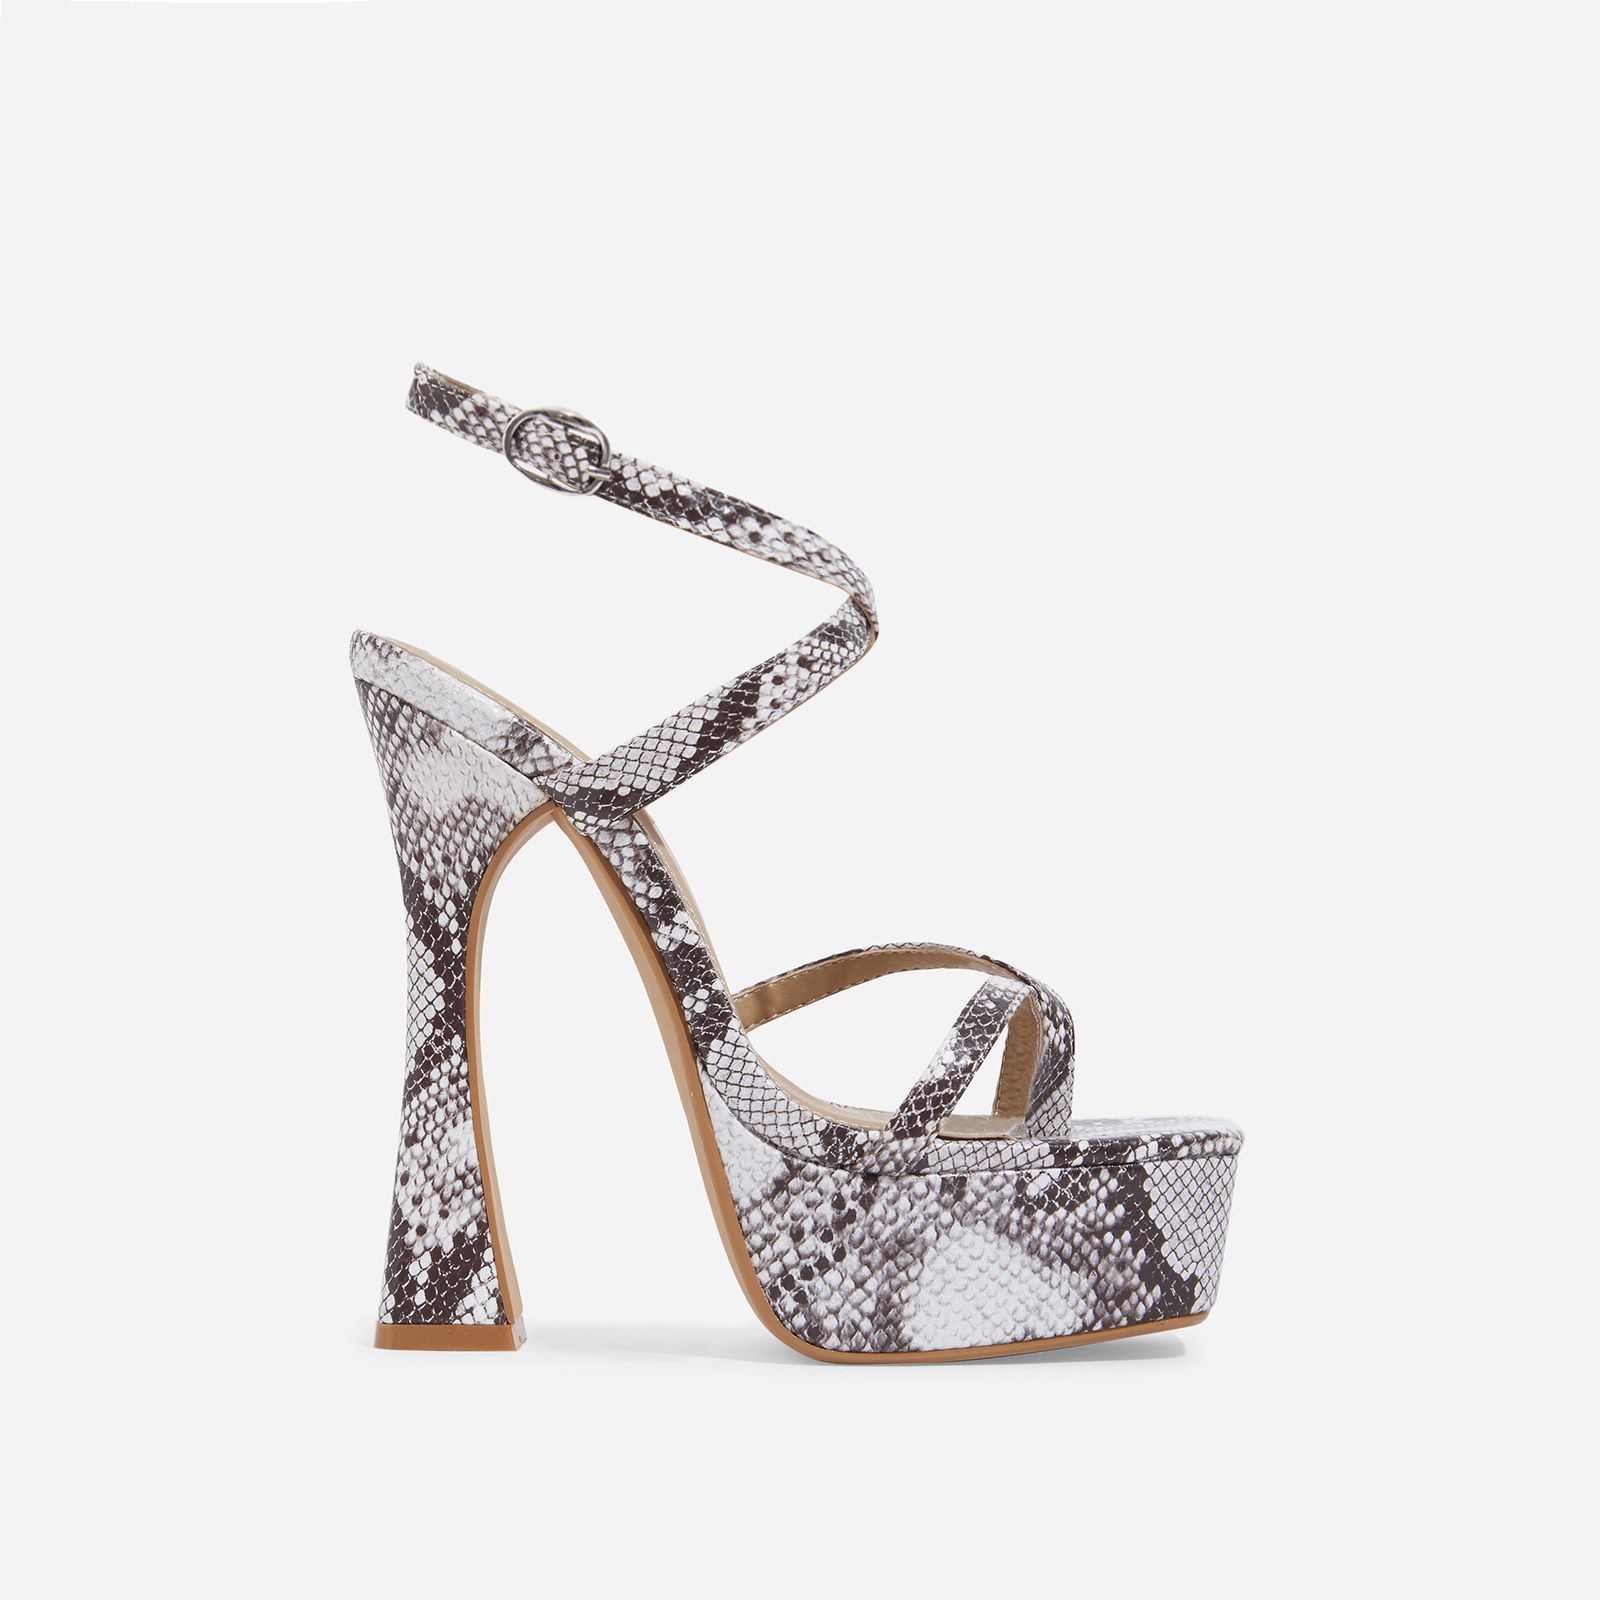 Vox Square Toe Platform Flared Heel In Grey Snake Print Faux Leather